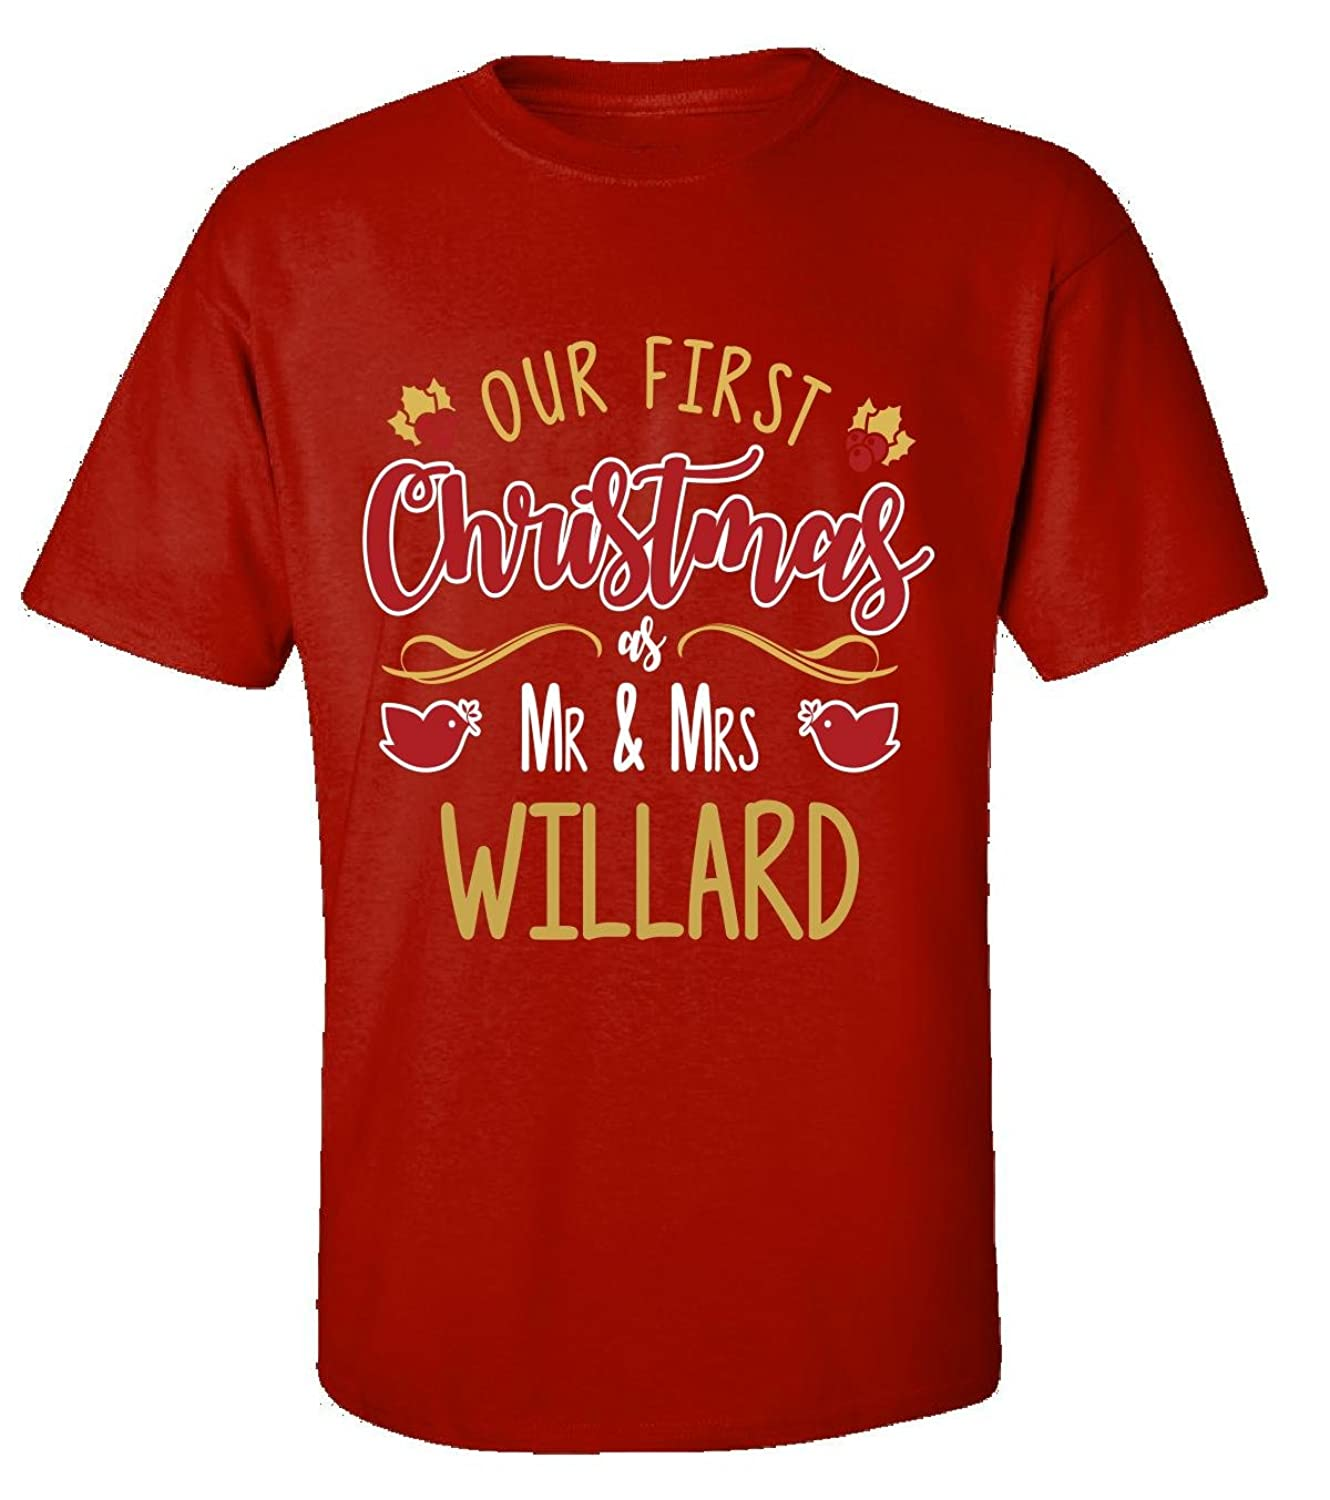 Our First Christmas As Mr & Mrs Willard - Adult Shirt